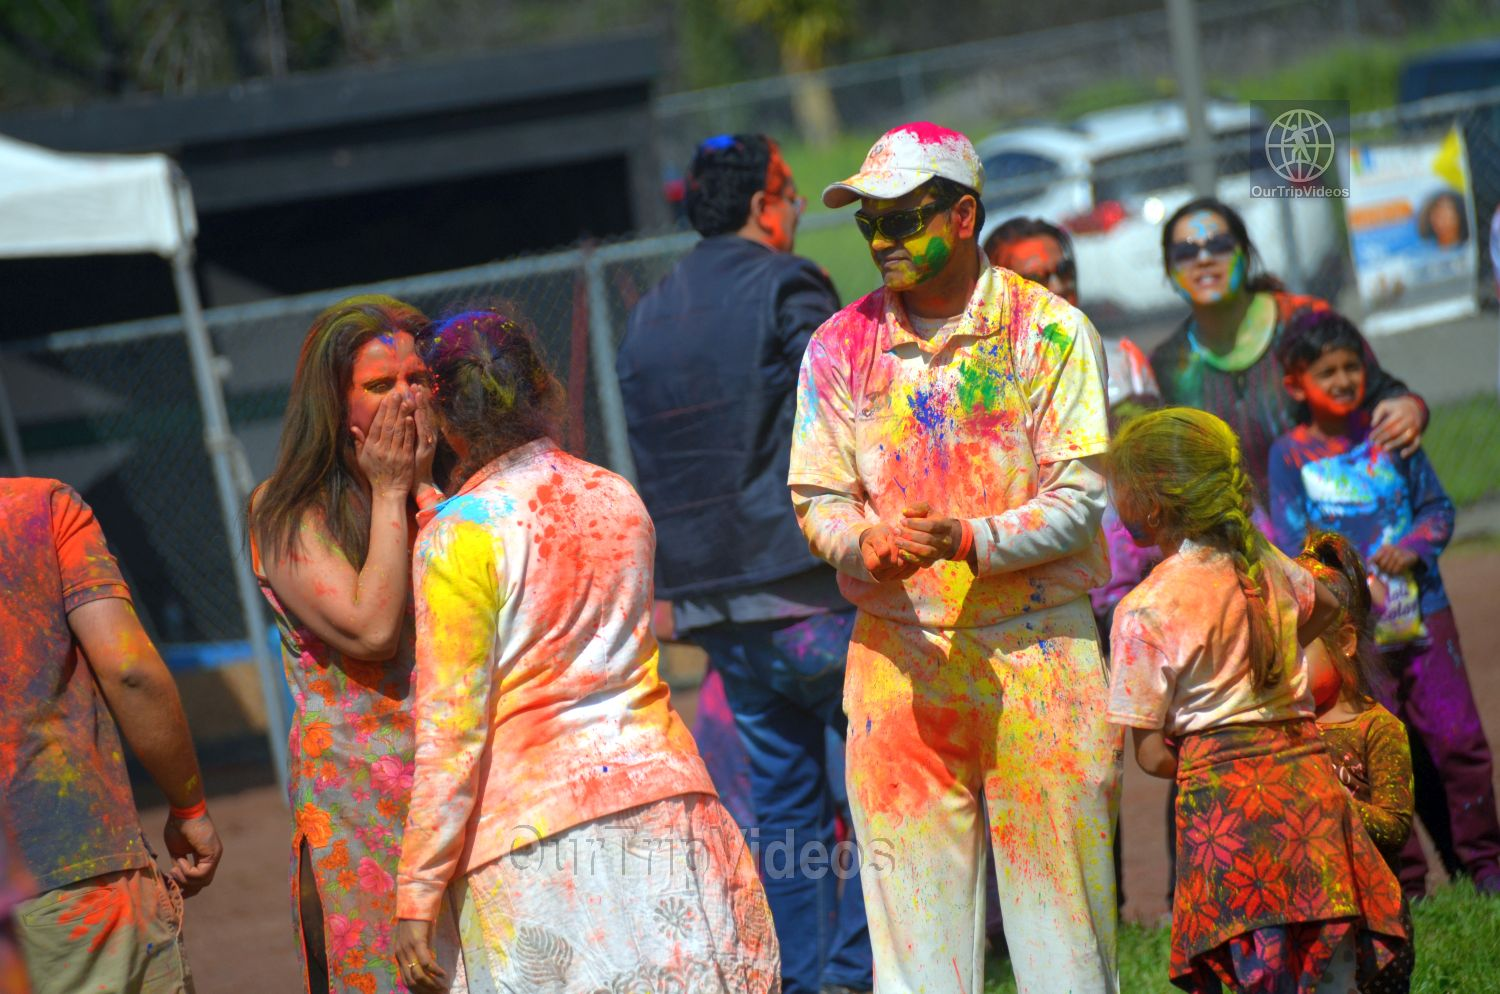 Festival of Colors - FOG and UPMA Holi, Fremont,CA, USA - Picture 20 of 25